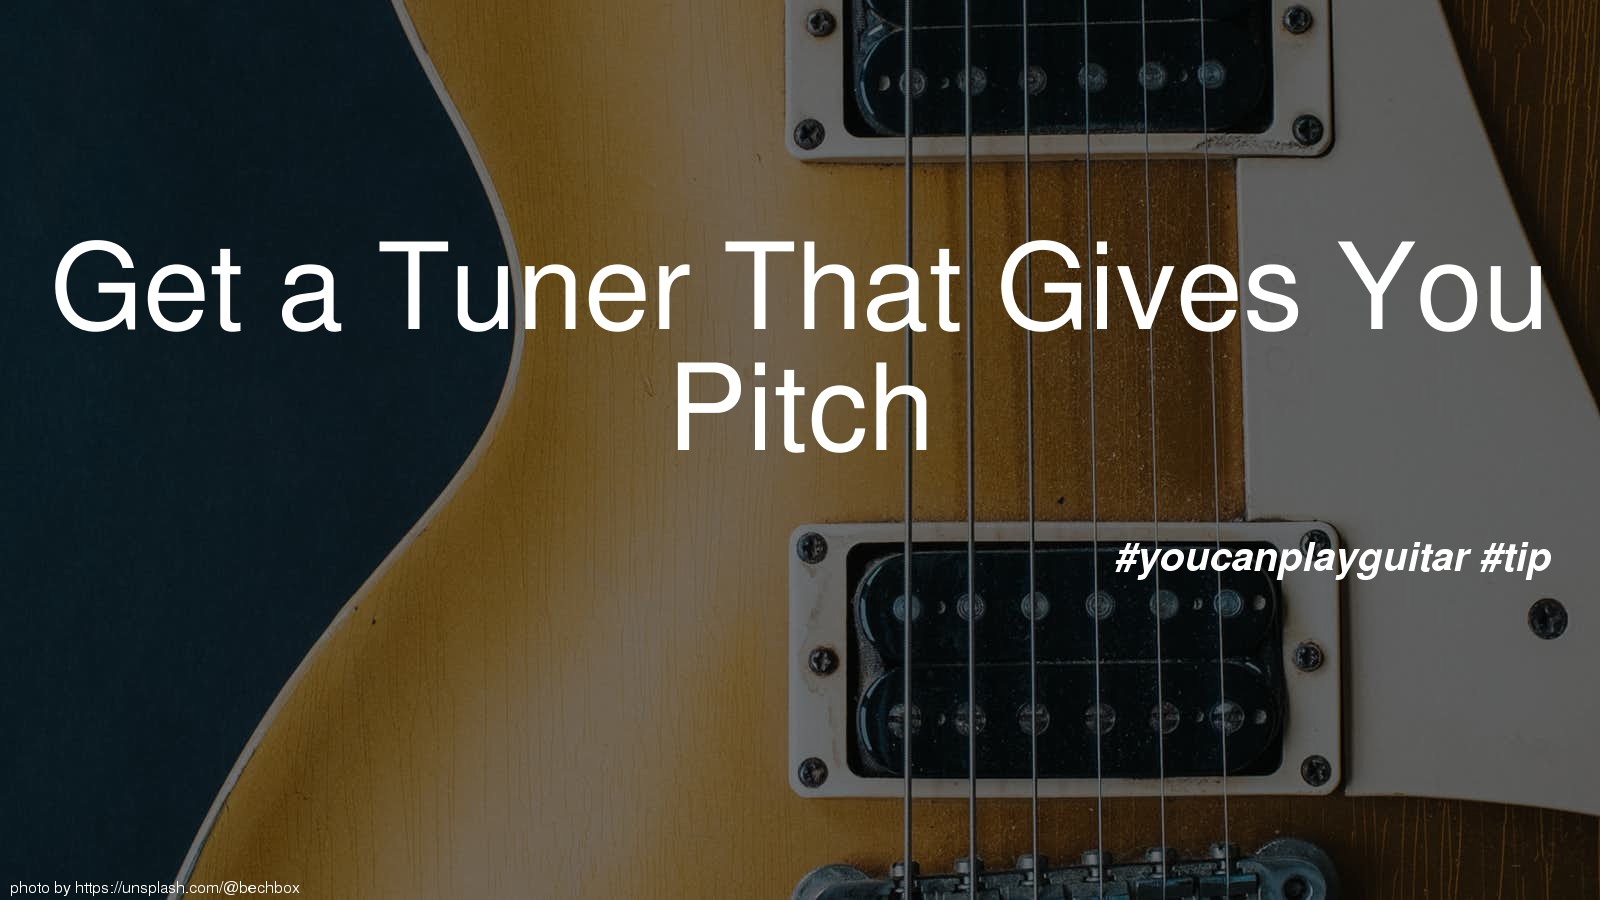 Get a Tuner That Gives You Pitch